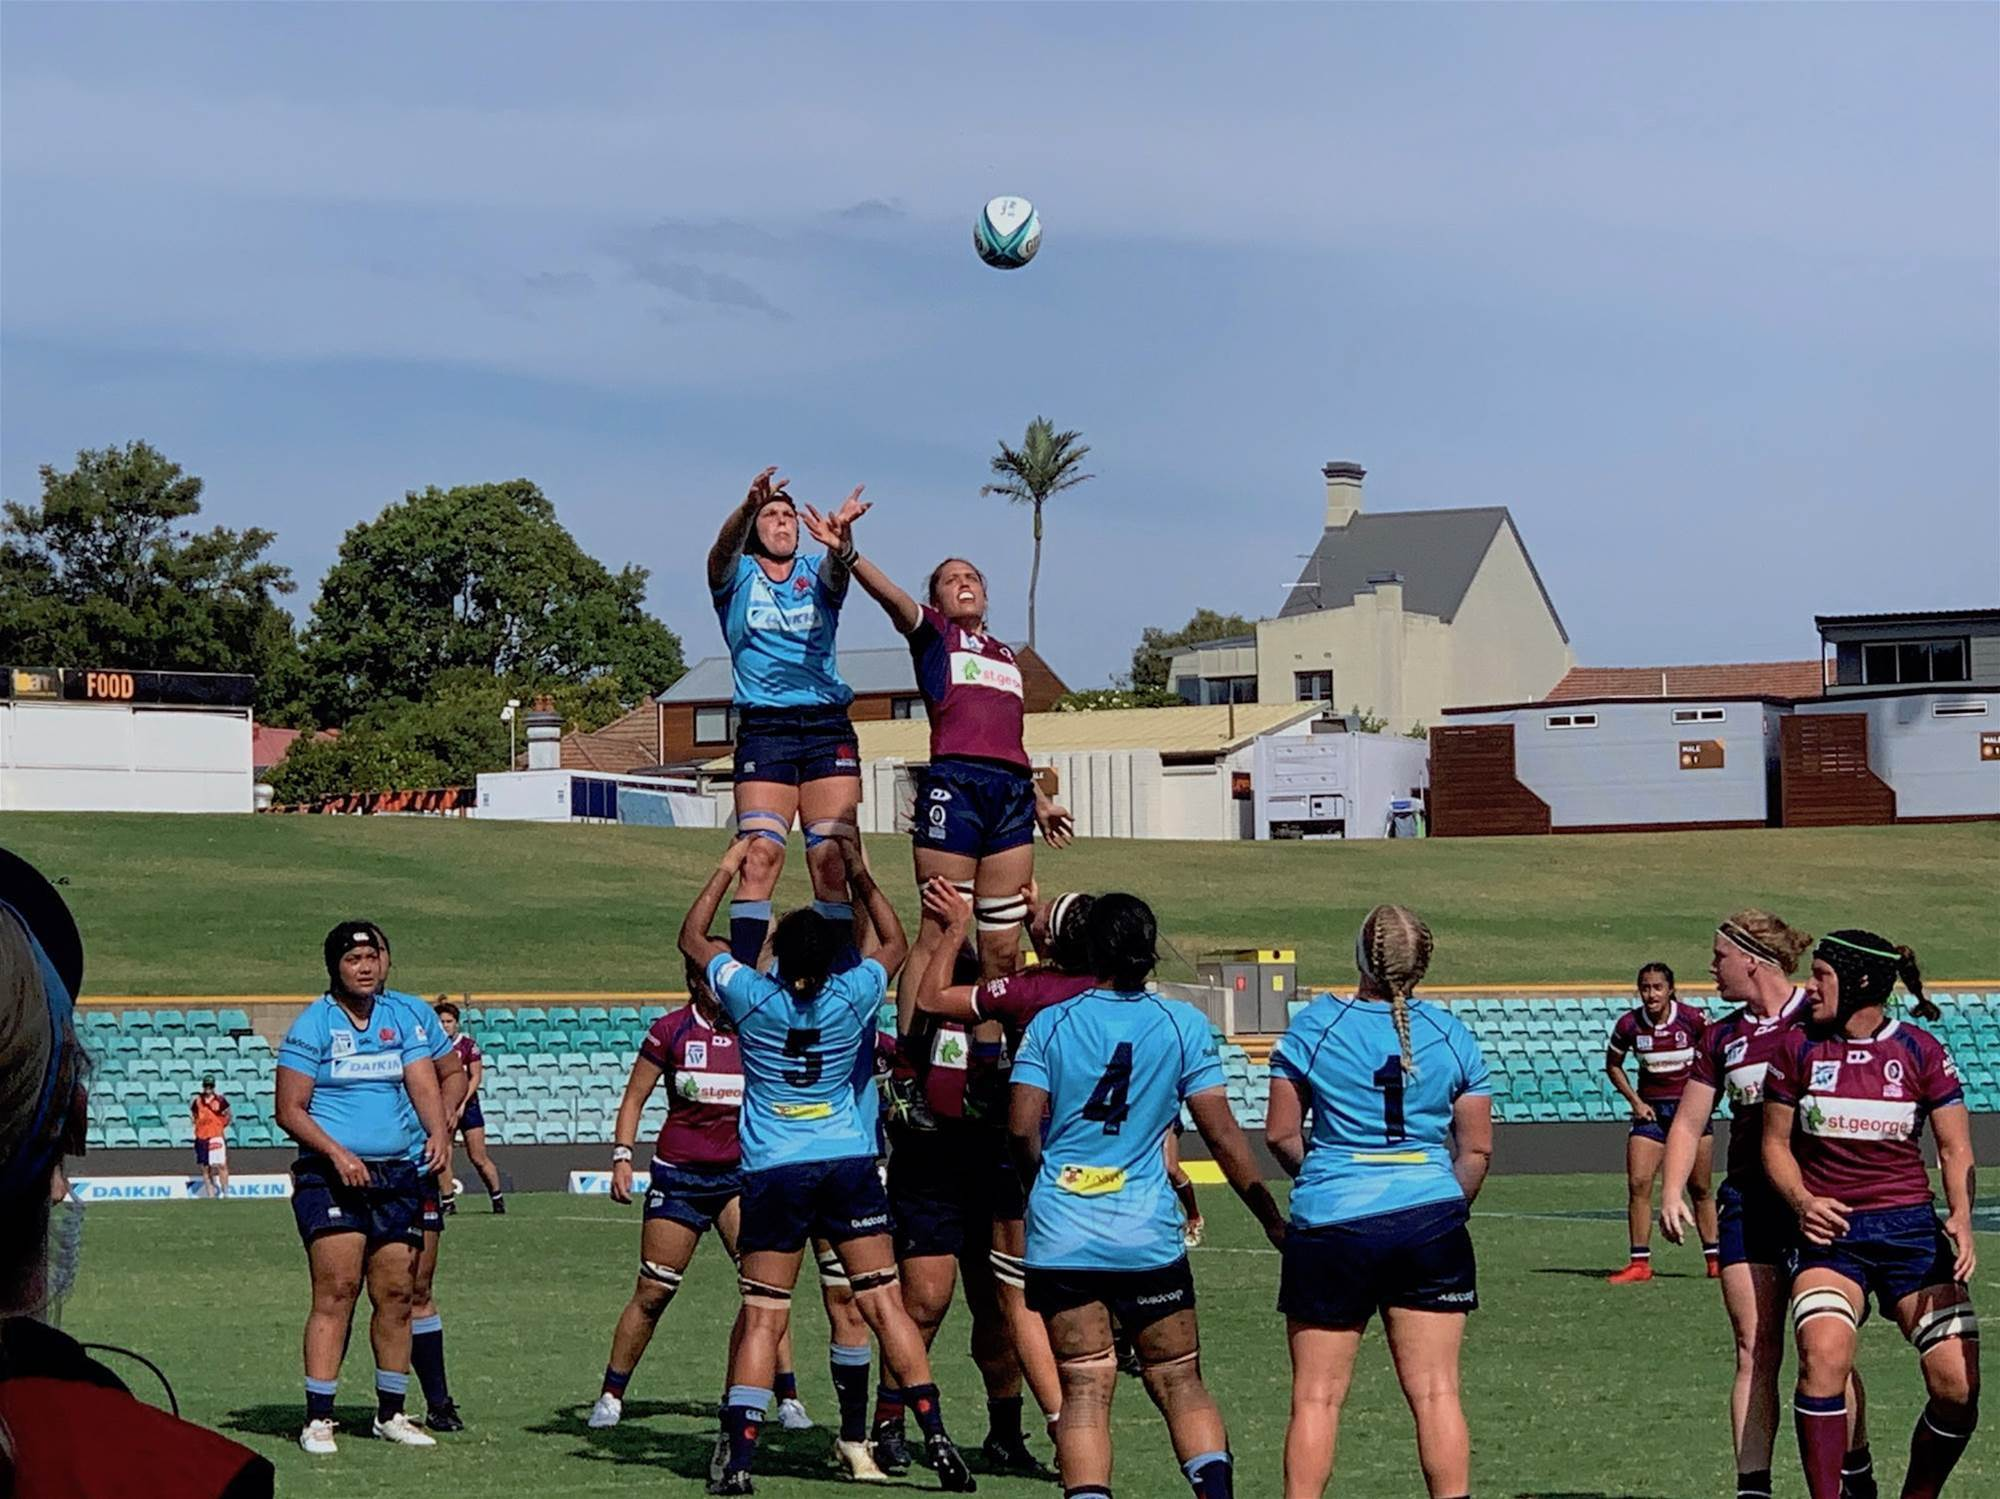 NSW banking on winning experience to go back-to-back